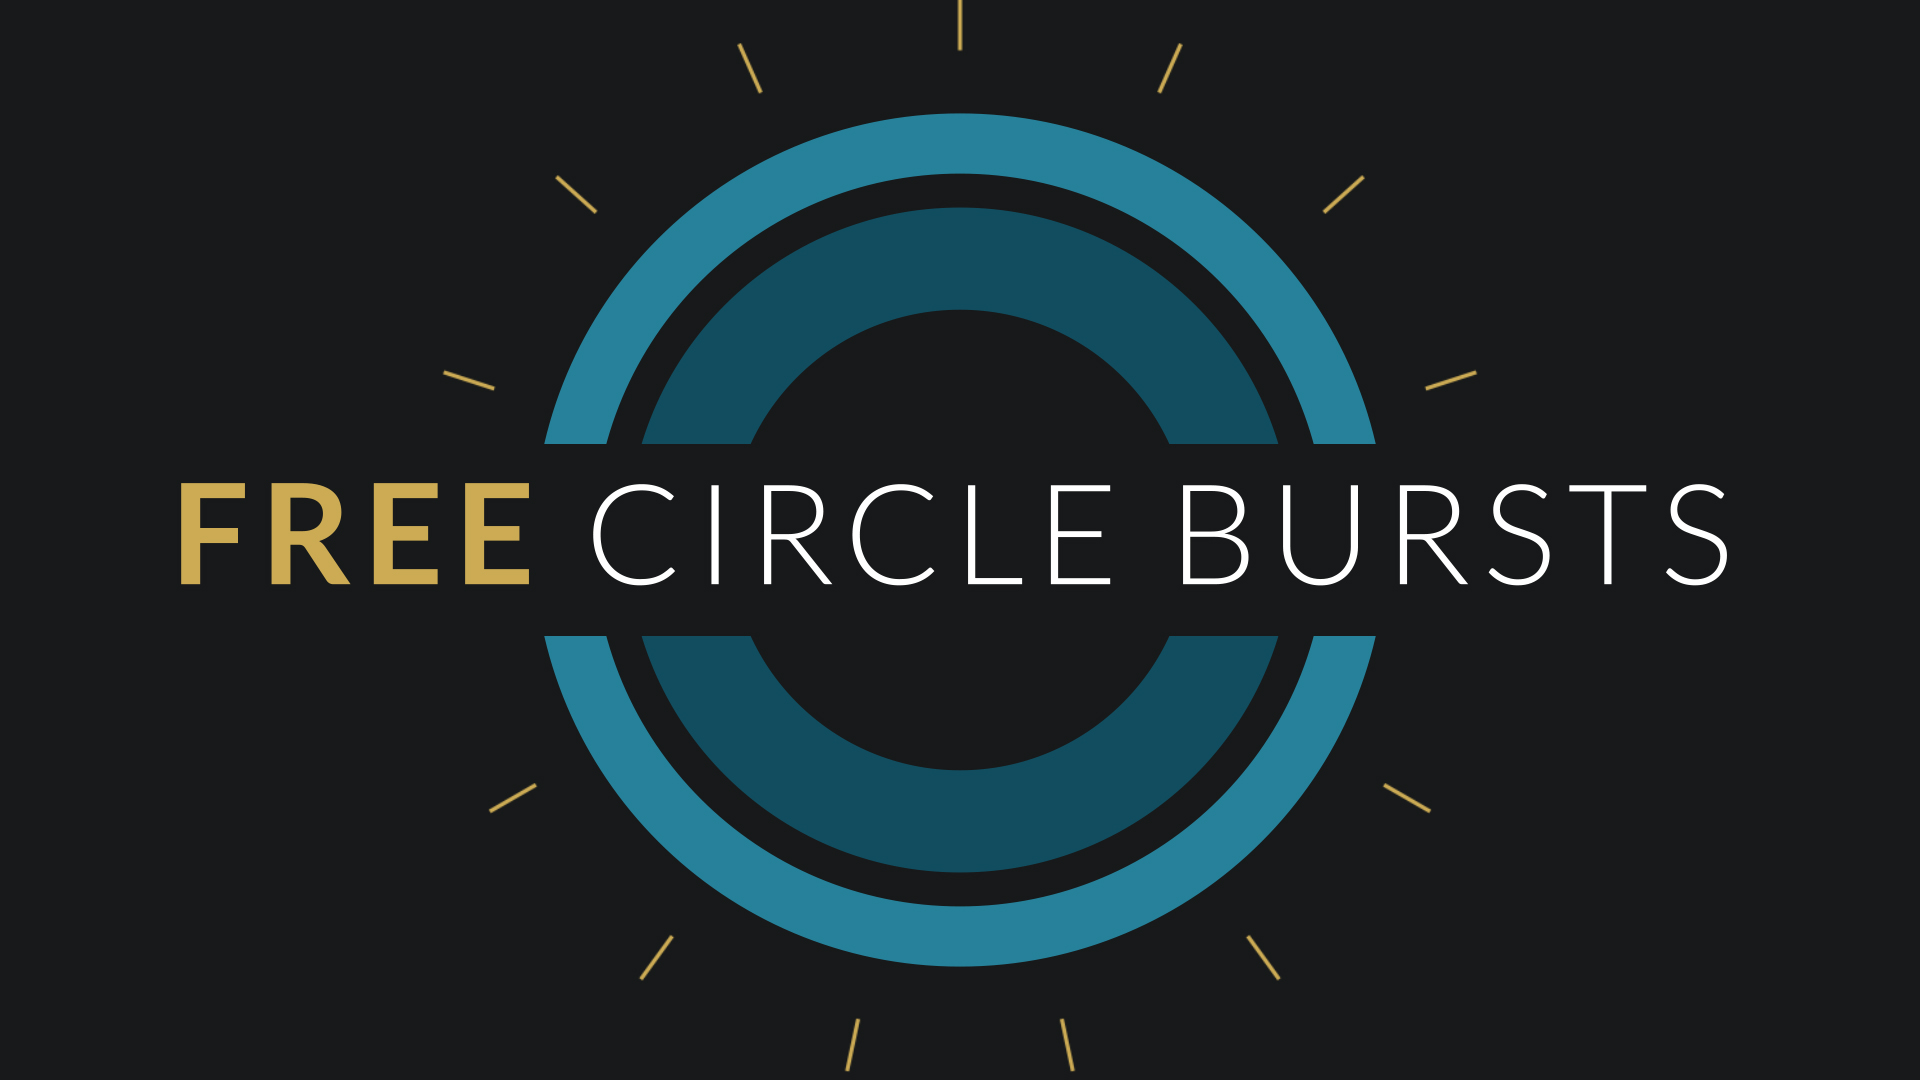 Free After Effects Template: Circle Burst Assets